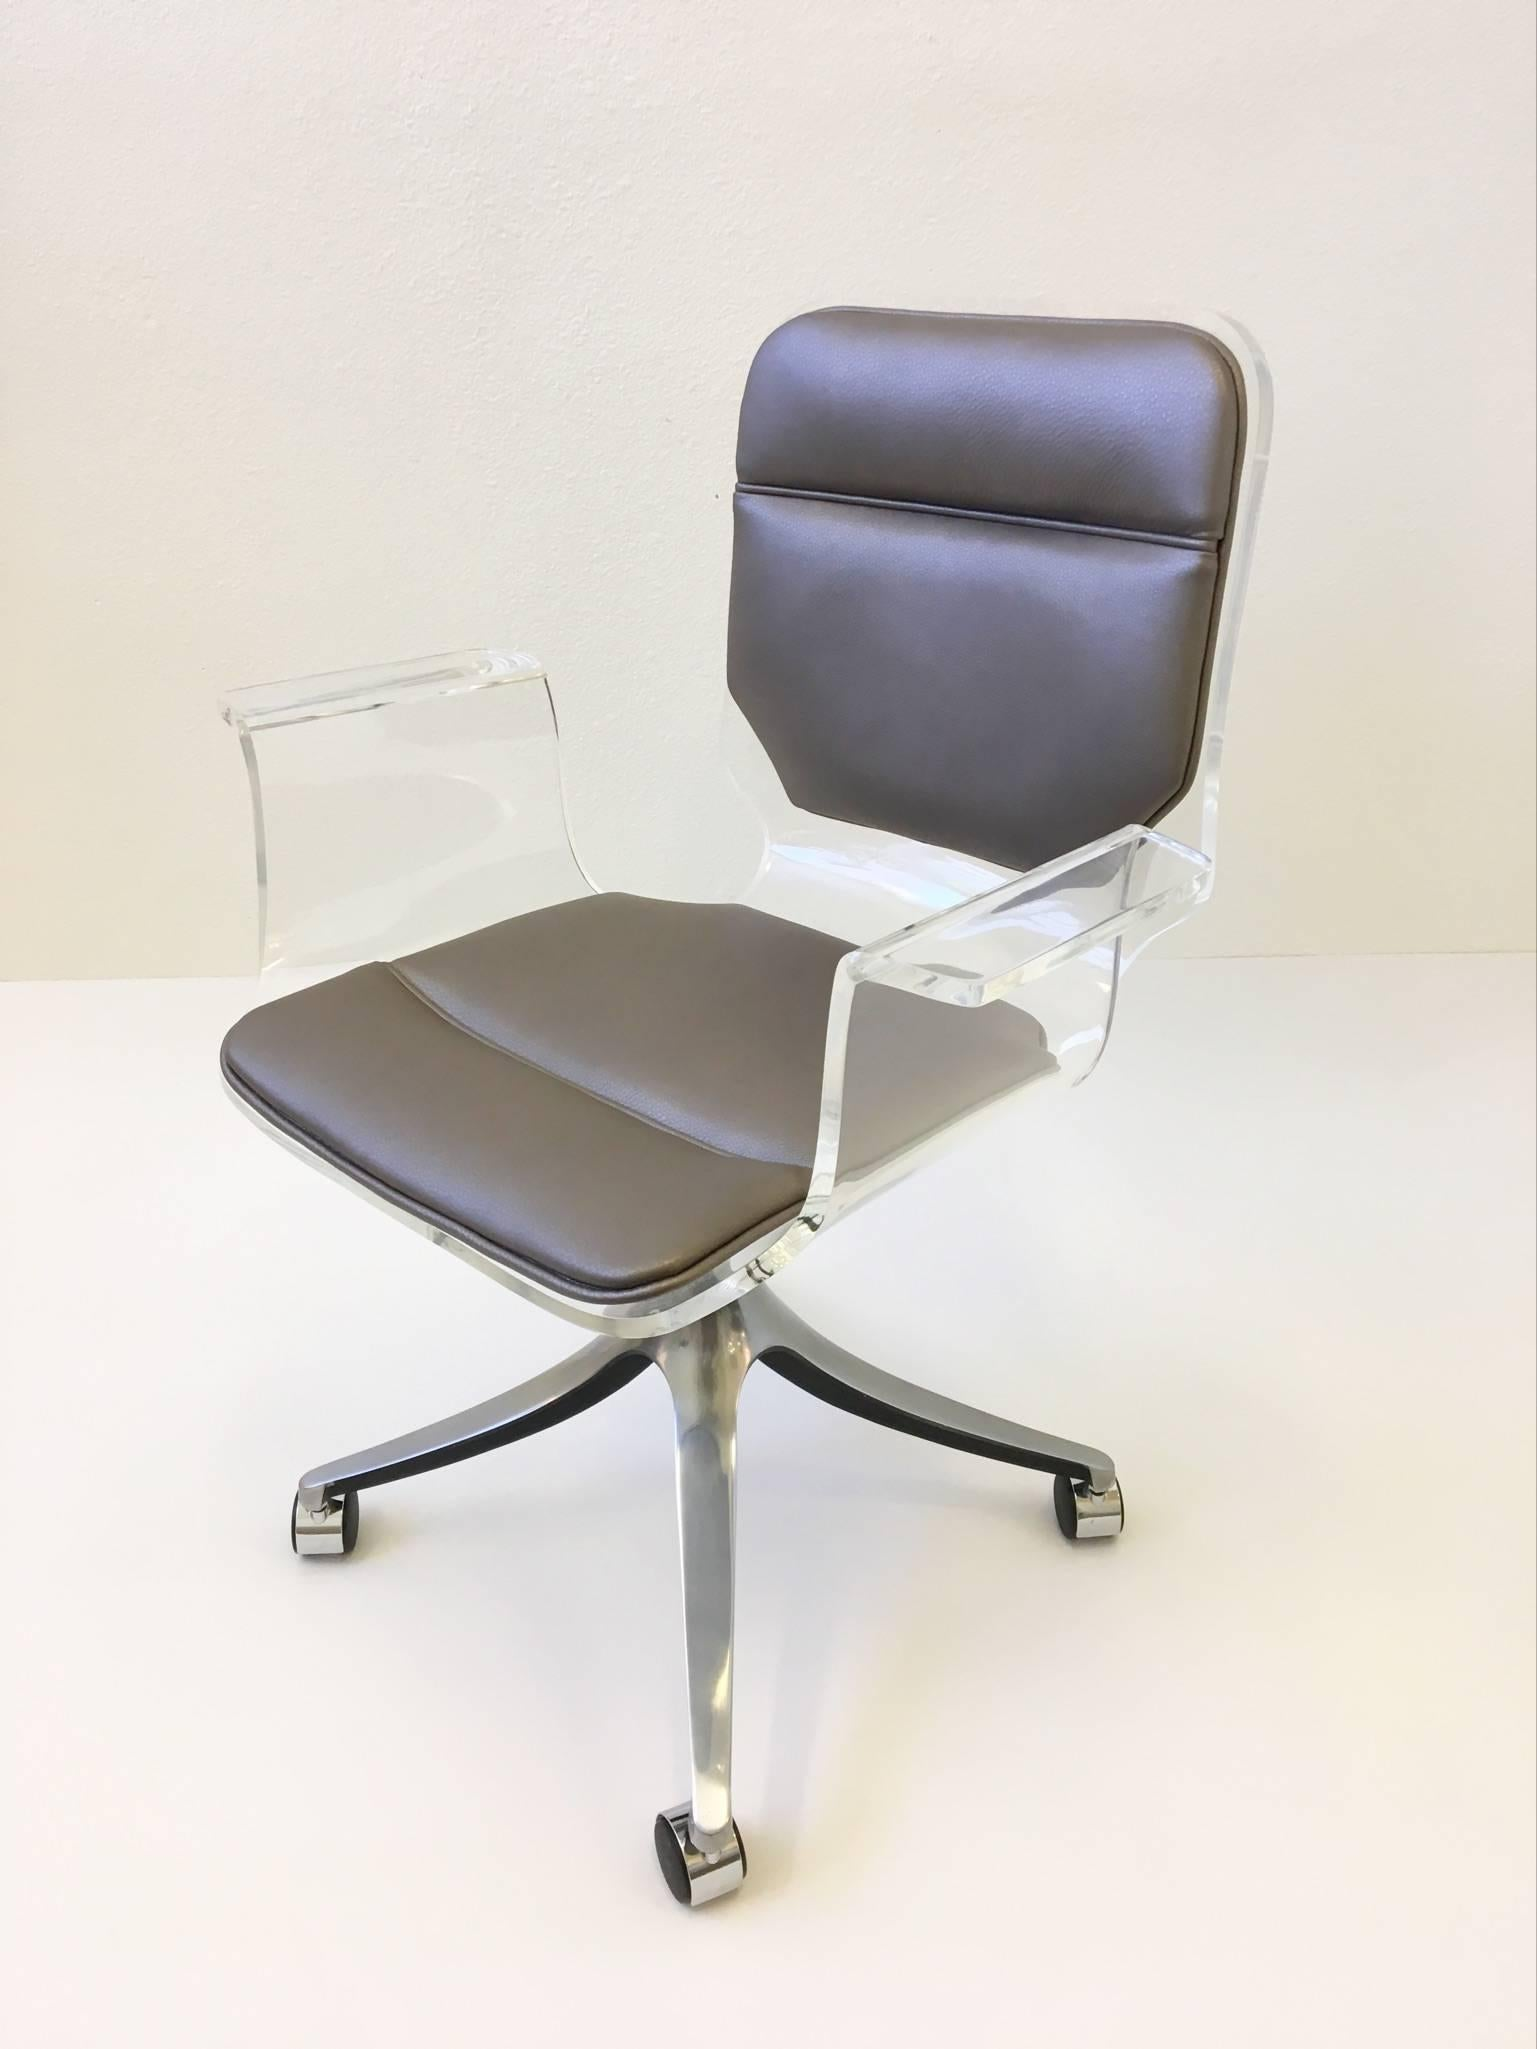 clear acrylic swivel office chair wood table white chairs and leather desk on casters by hill manufacturing co. at 1stdibs